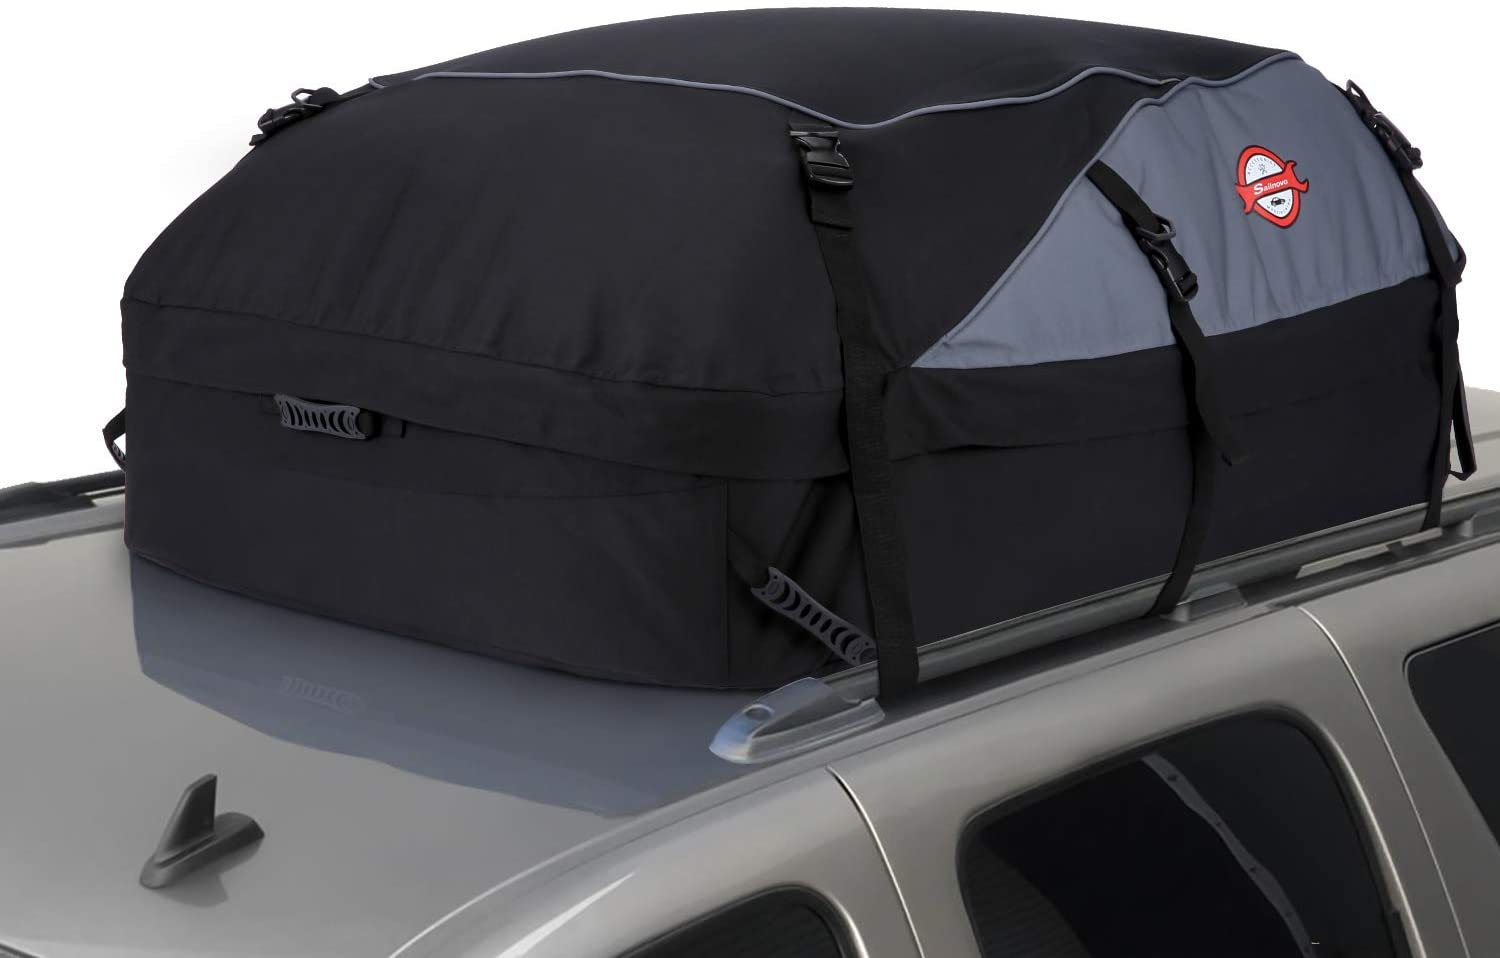 Adakiit Car Roof Bag Rooftop Cargo Carrier